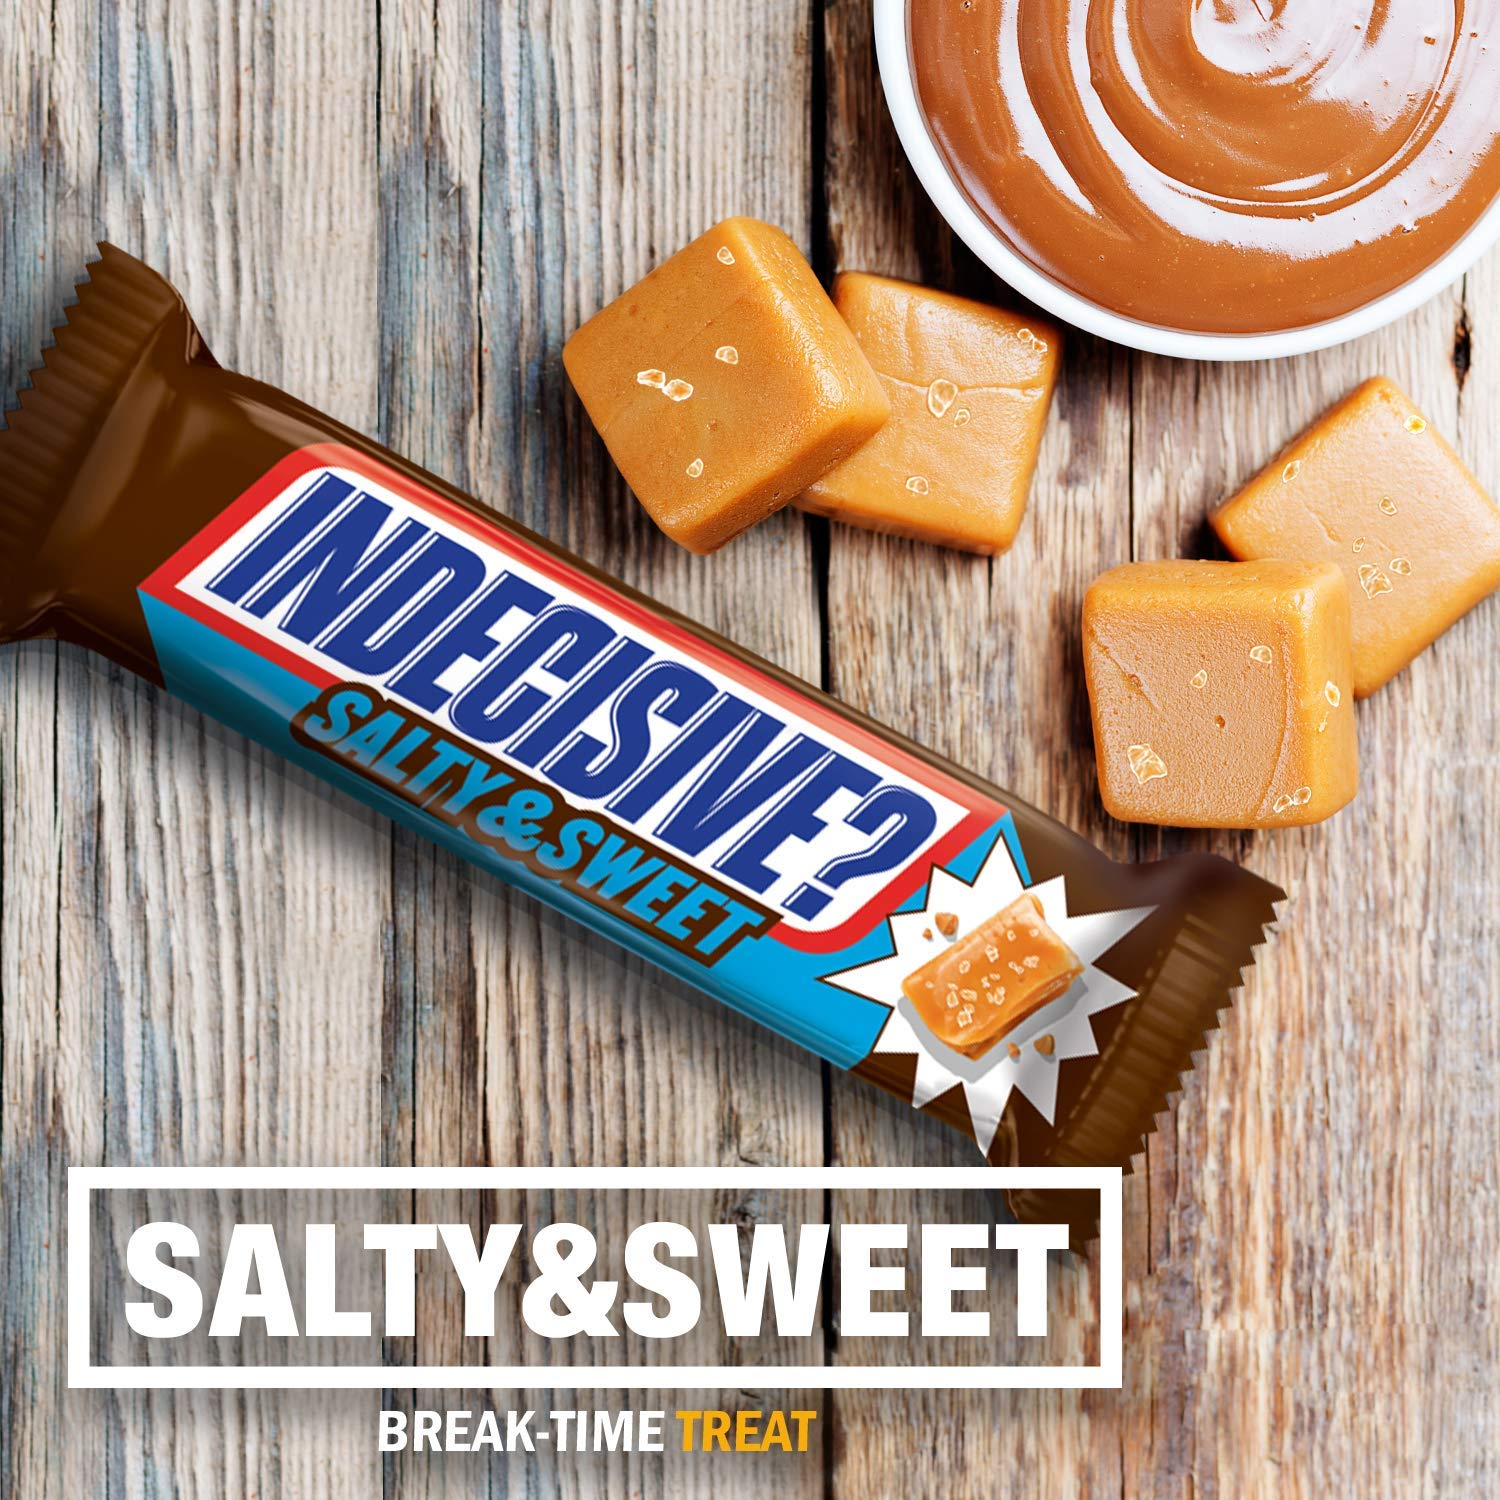 Snickers Salty & Sweet Chocolate Candy King Size Bars, 3.23 Ounce (Pack of 24) by SNICKERS SALTY & SWEET KING SZ 24CT